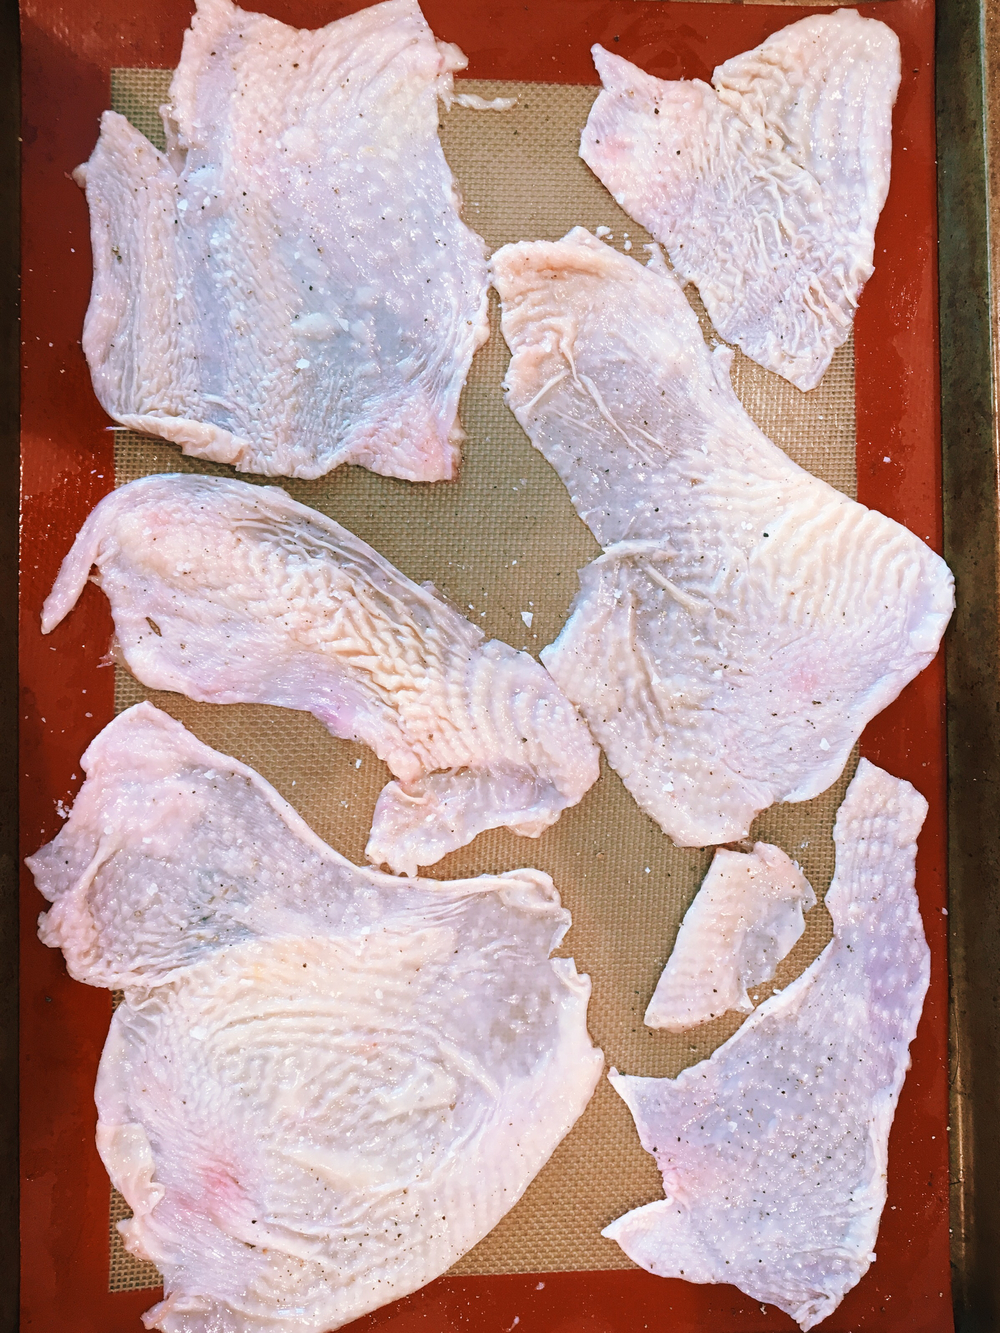 Chicken skins on silpat